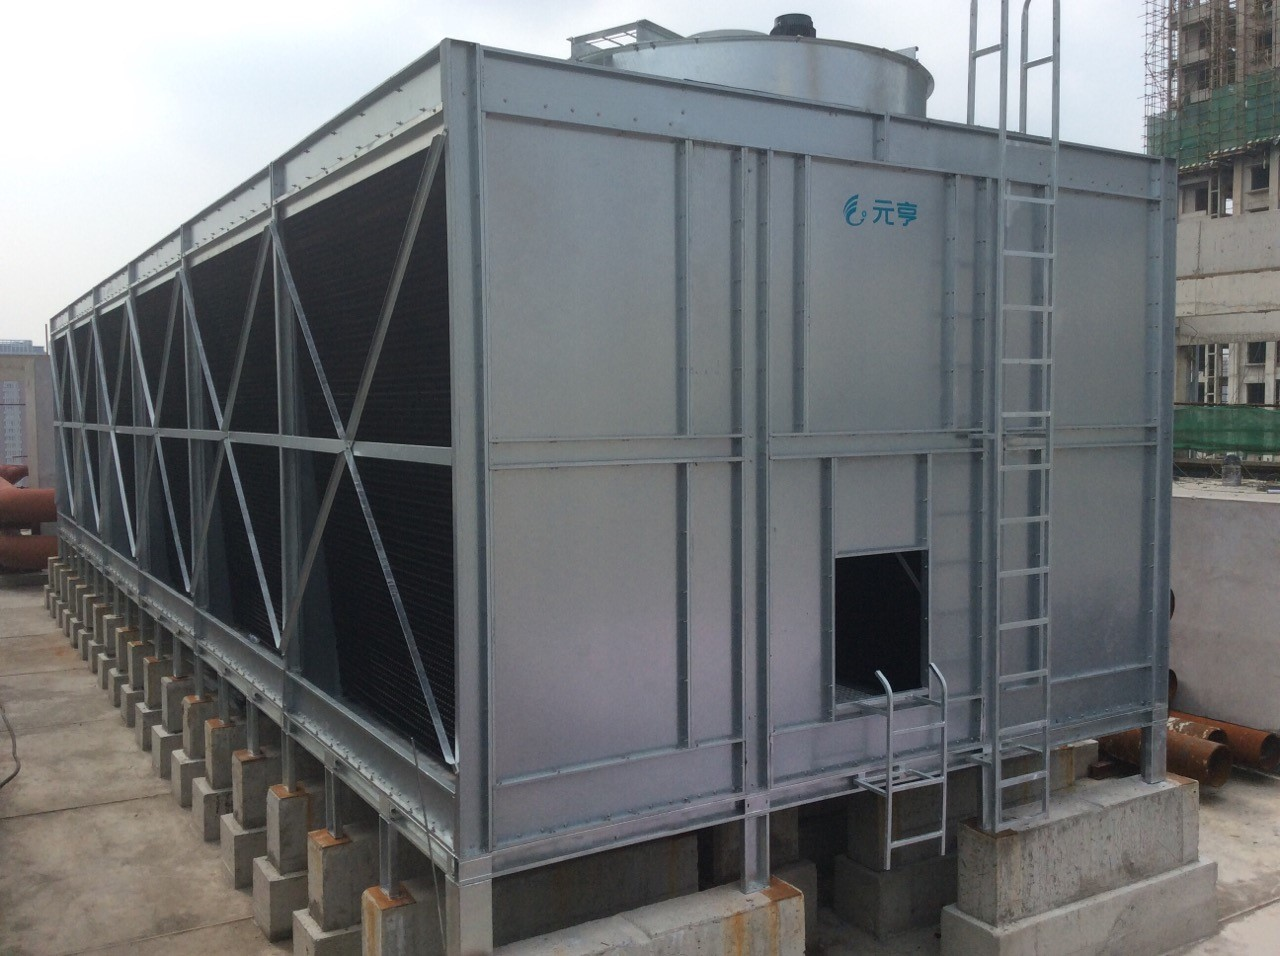 High quality All steel Double side Air Inlet Top Discharge Cross Flow Cooling Tower Quotes,China well-know professional All steel Double side Air Inlet Top Discharge Cross Flow Cooling Tower Factory,your best choice All steel Double side Air Inlet Top Discharge Cross Flow Cooling Tower Purchasing